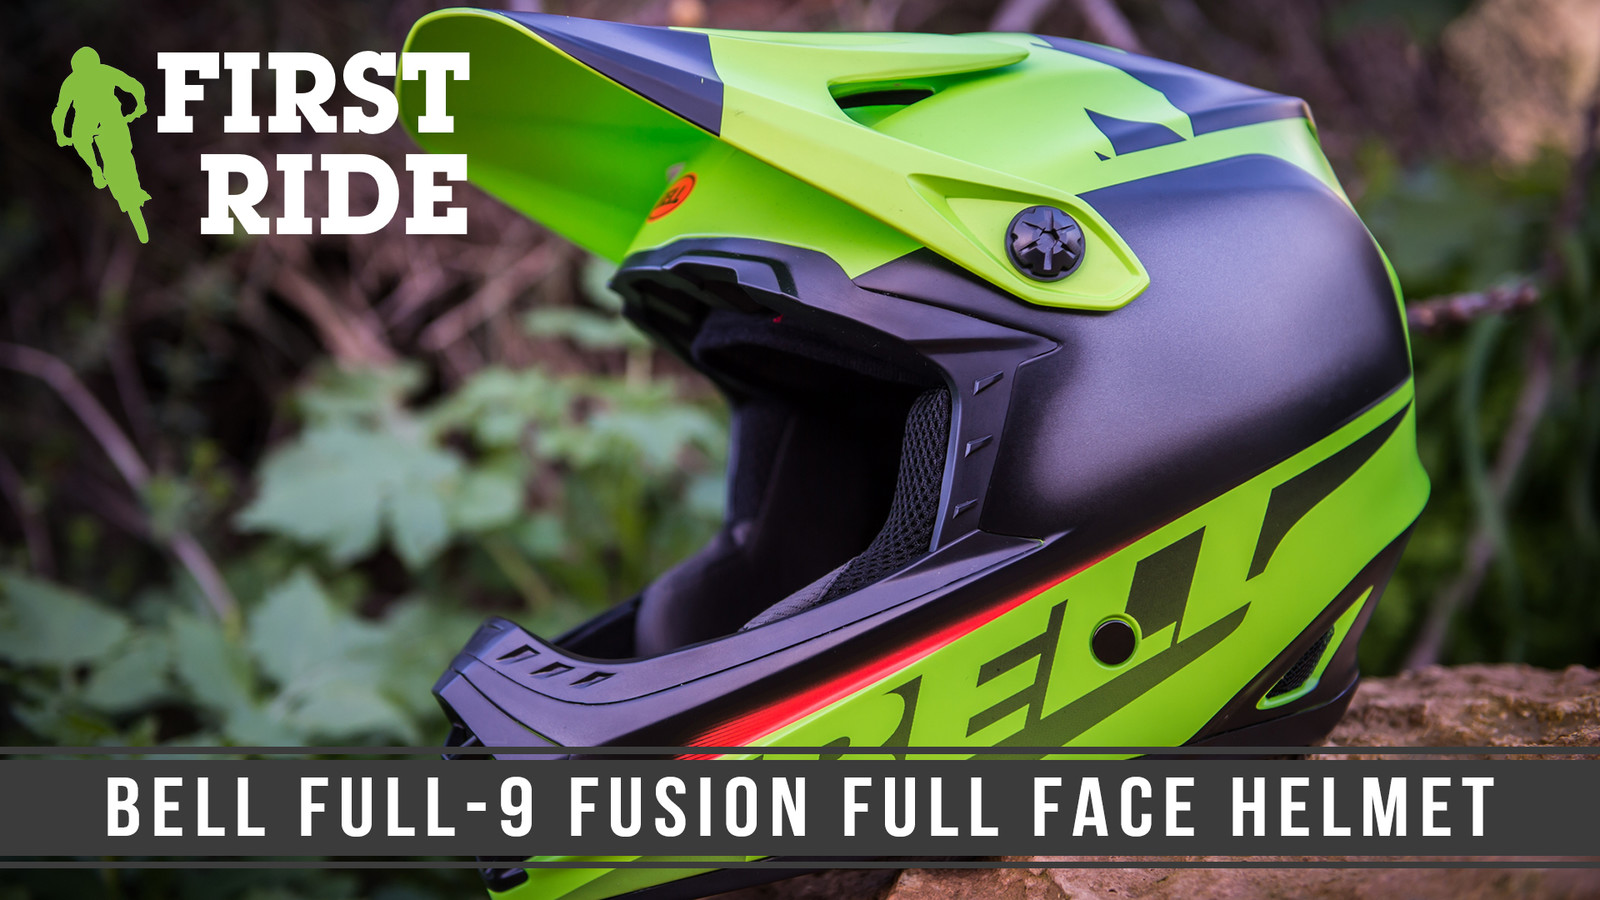 First Ride: Bell Full-9 Fusion